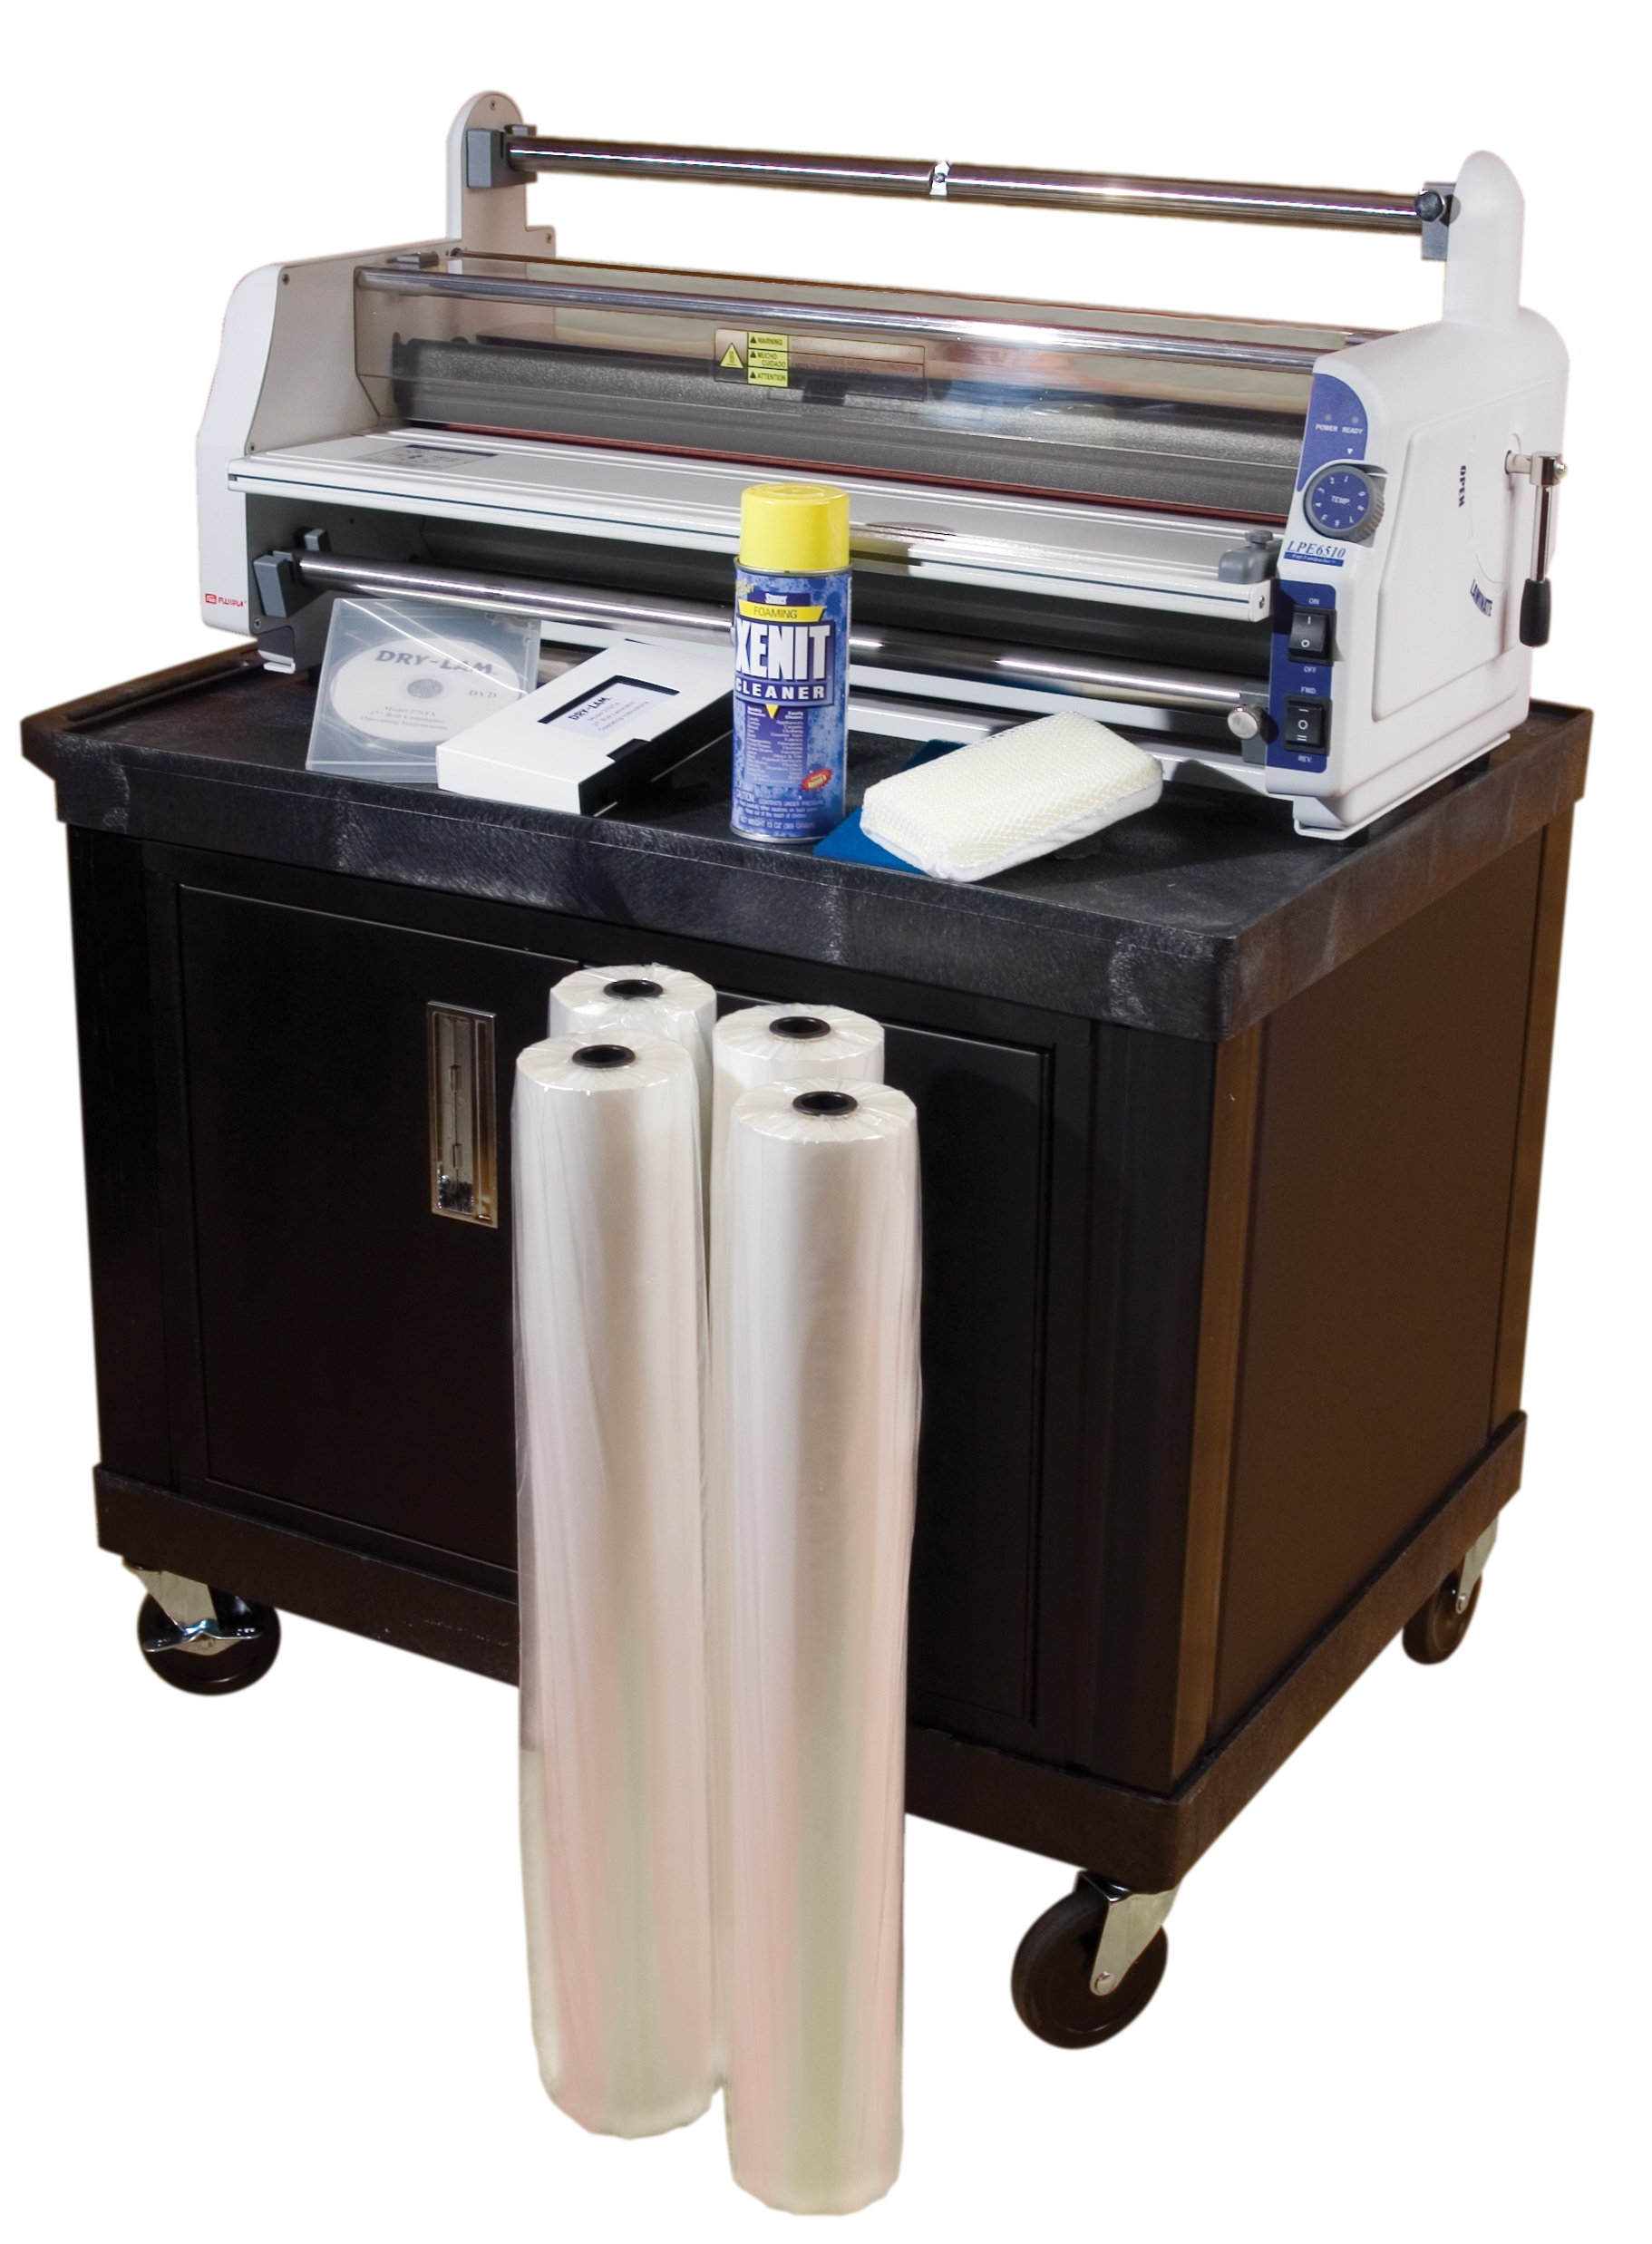 "Fujipla LPE6510 Laminating System – 25"" School Laminating System with Cart and Supplies"